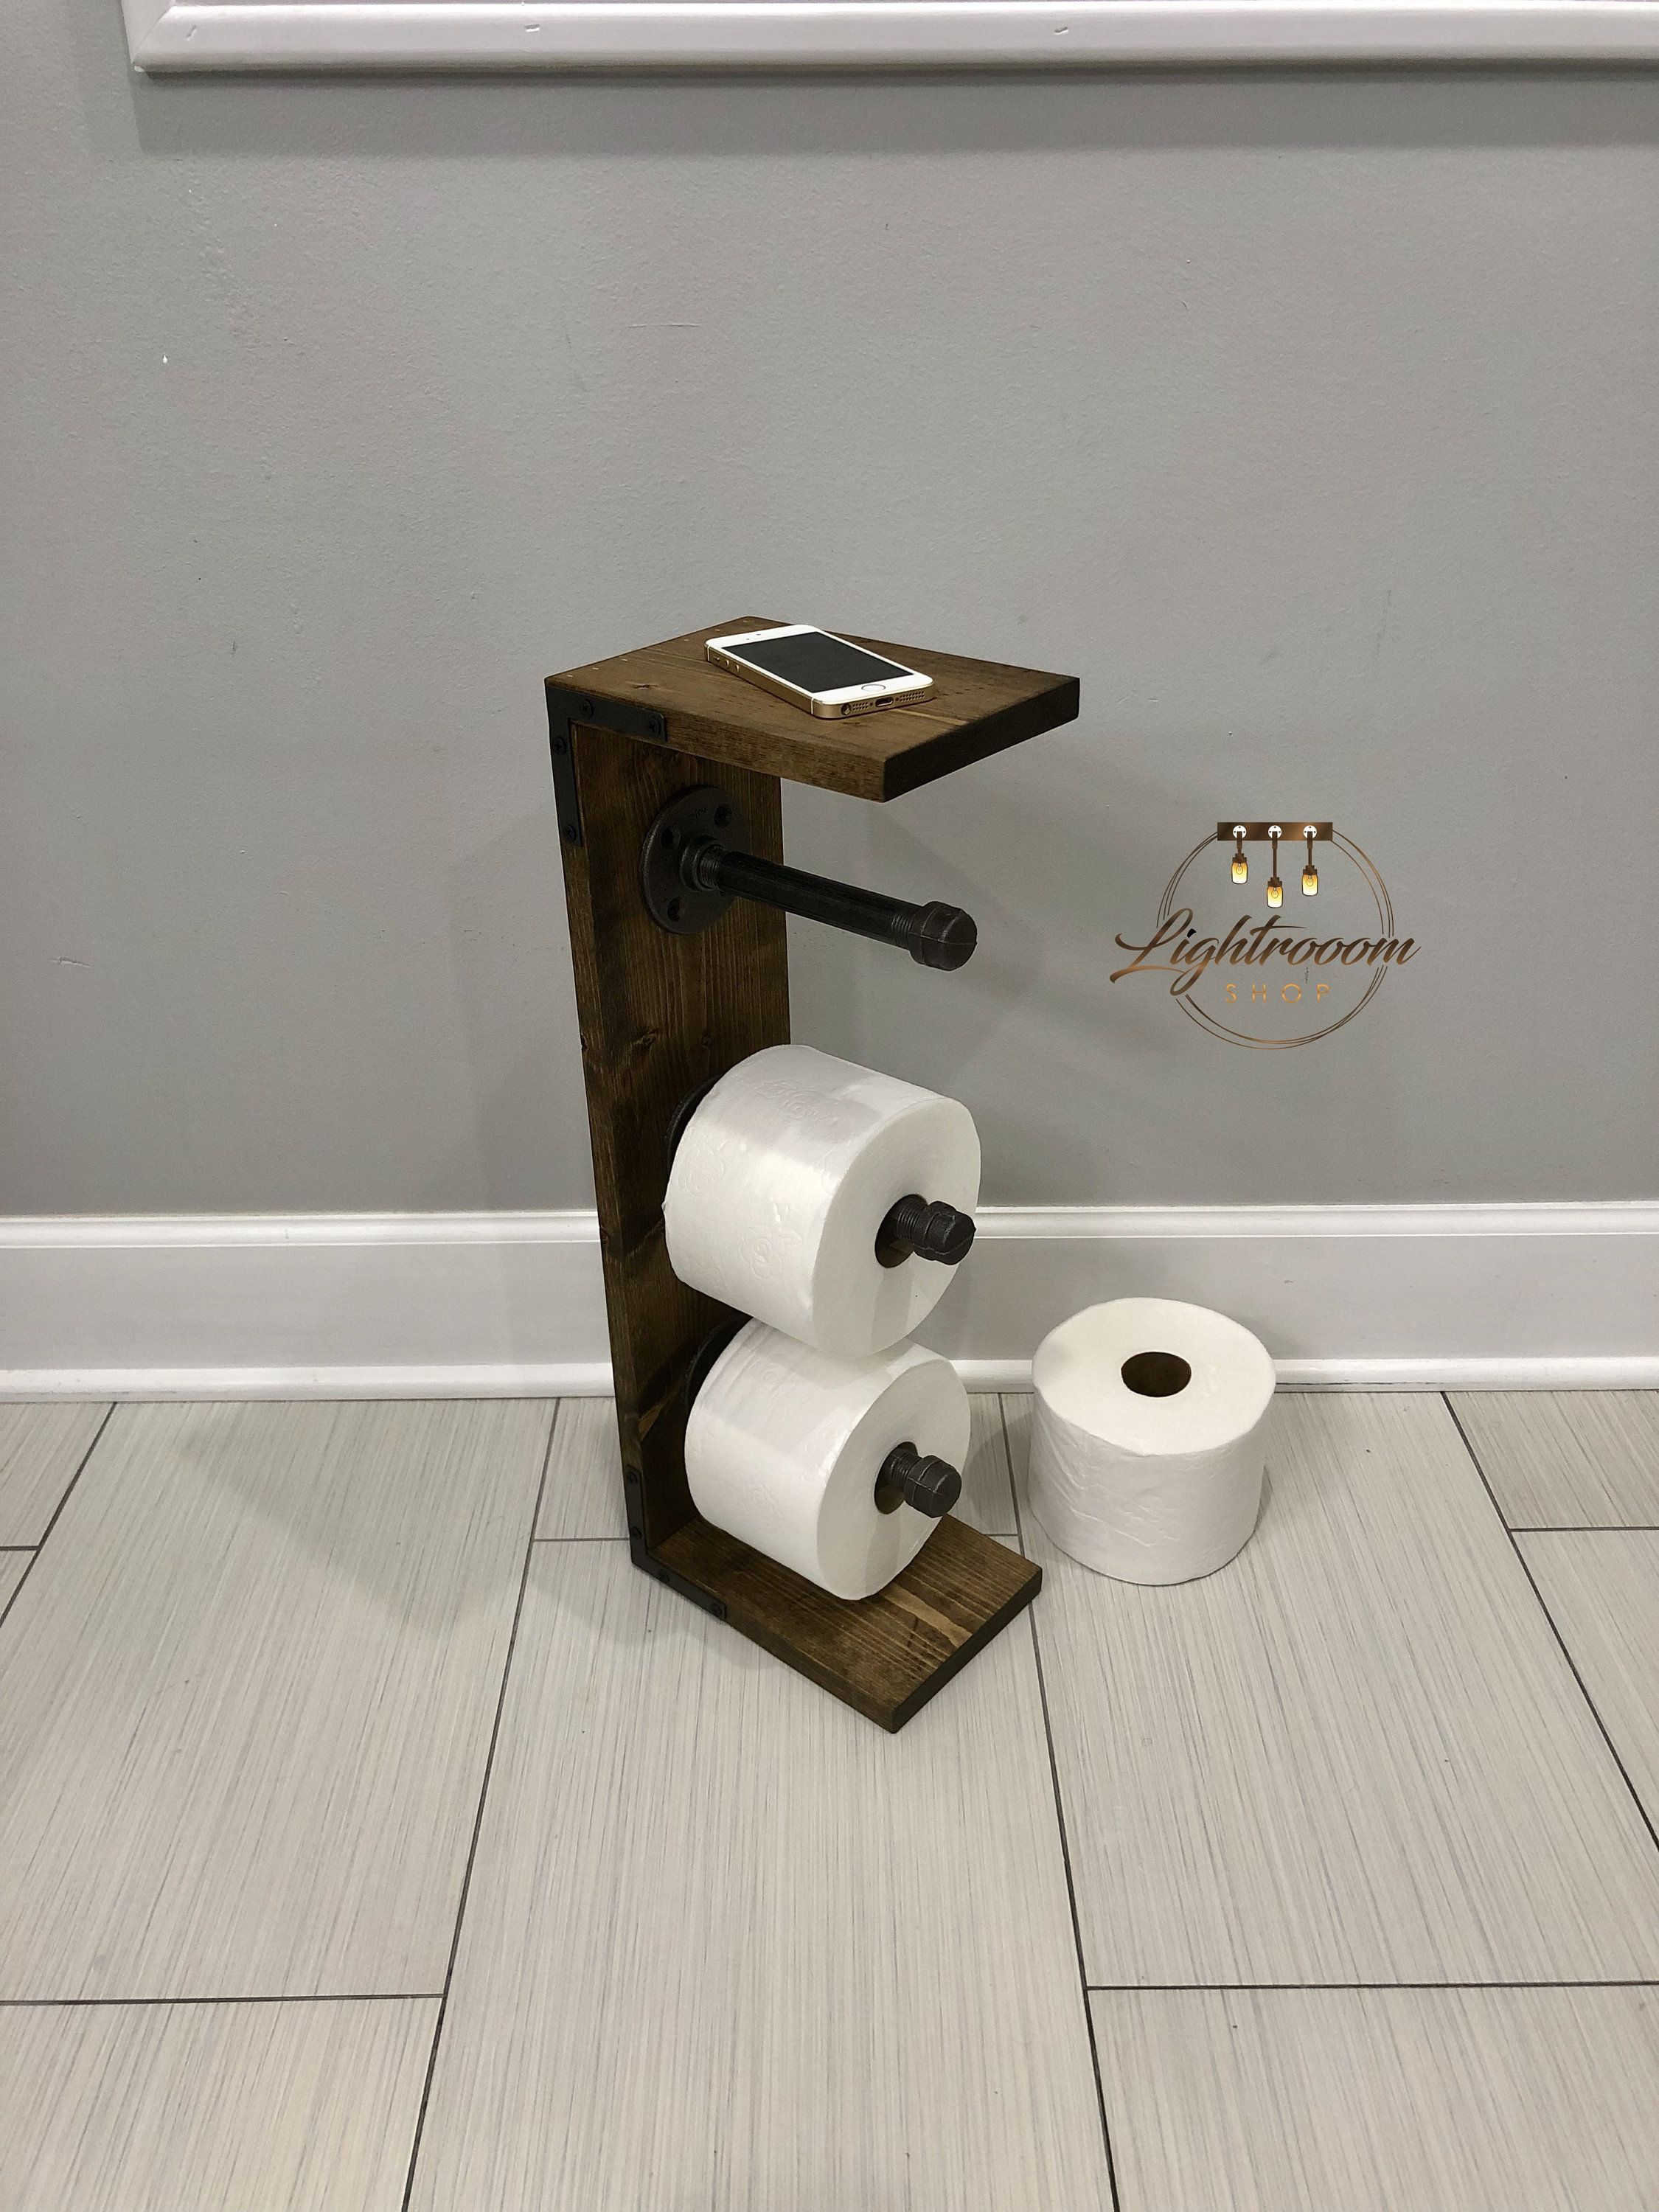 Pin On Toilet Paper Holder